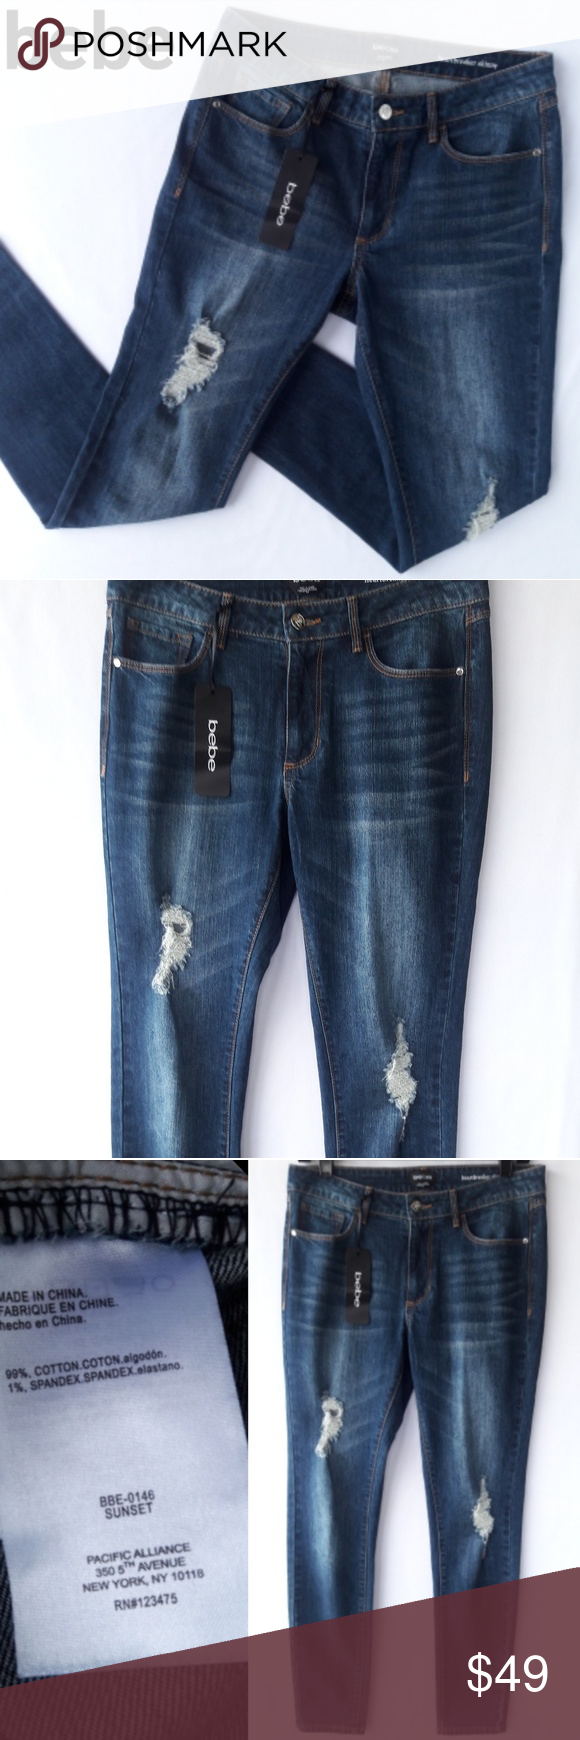 7e2a72ab90c BEBE💔Heartbreaker High Rise Skinny Jeans Bebe Heartbreaker Skinny Jeans  Size 29 • New with Tags • High waisted/Ankle cropped • Distressed/ripped  medium ...